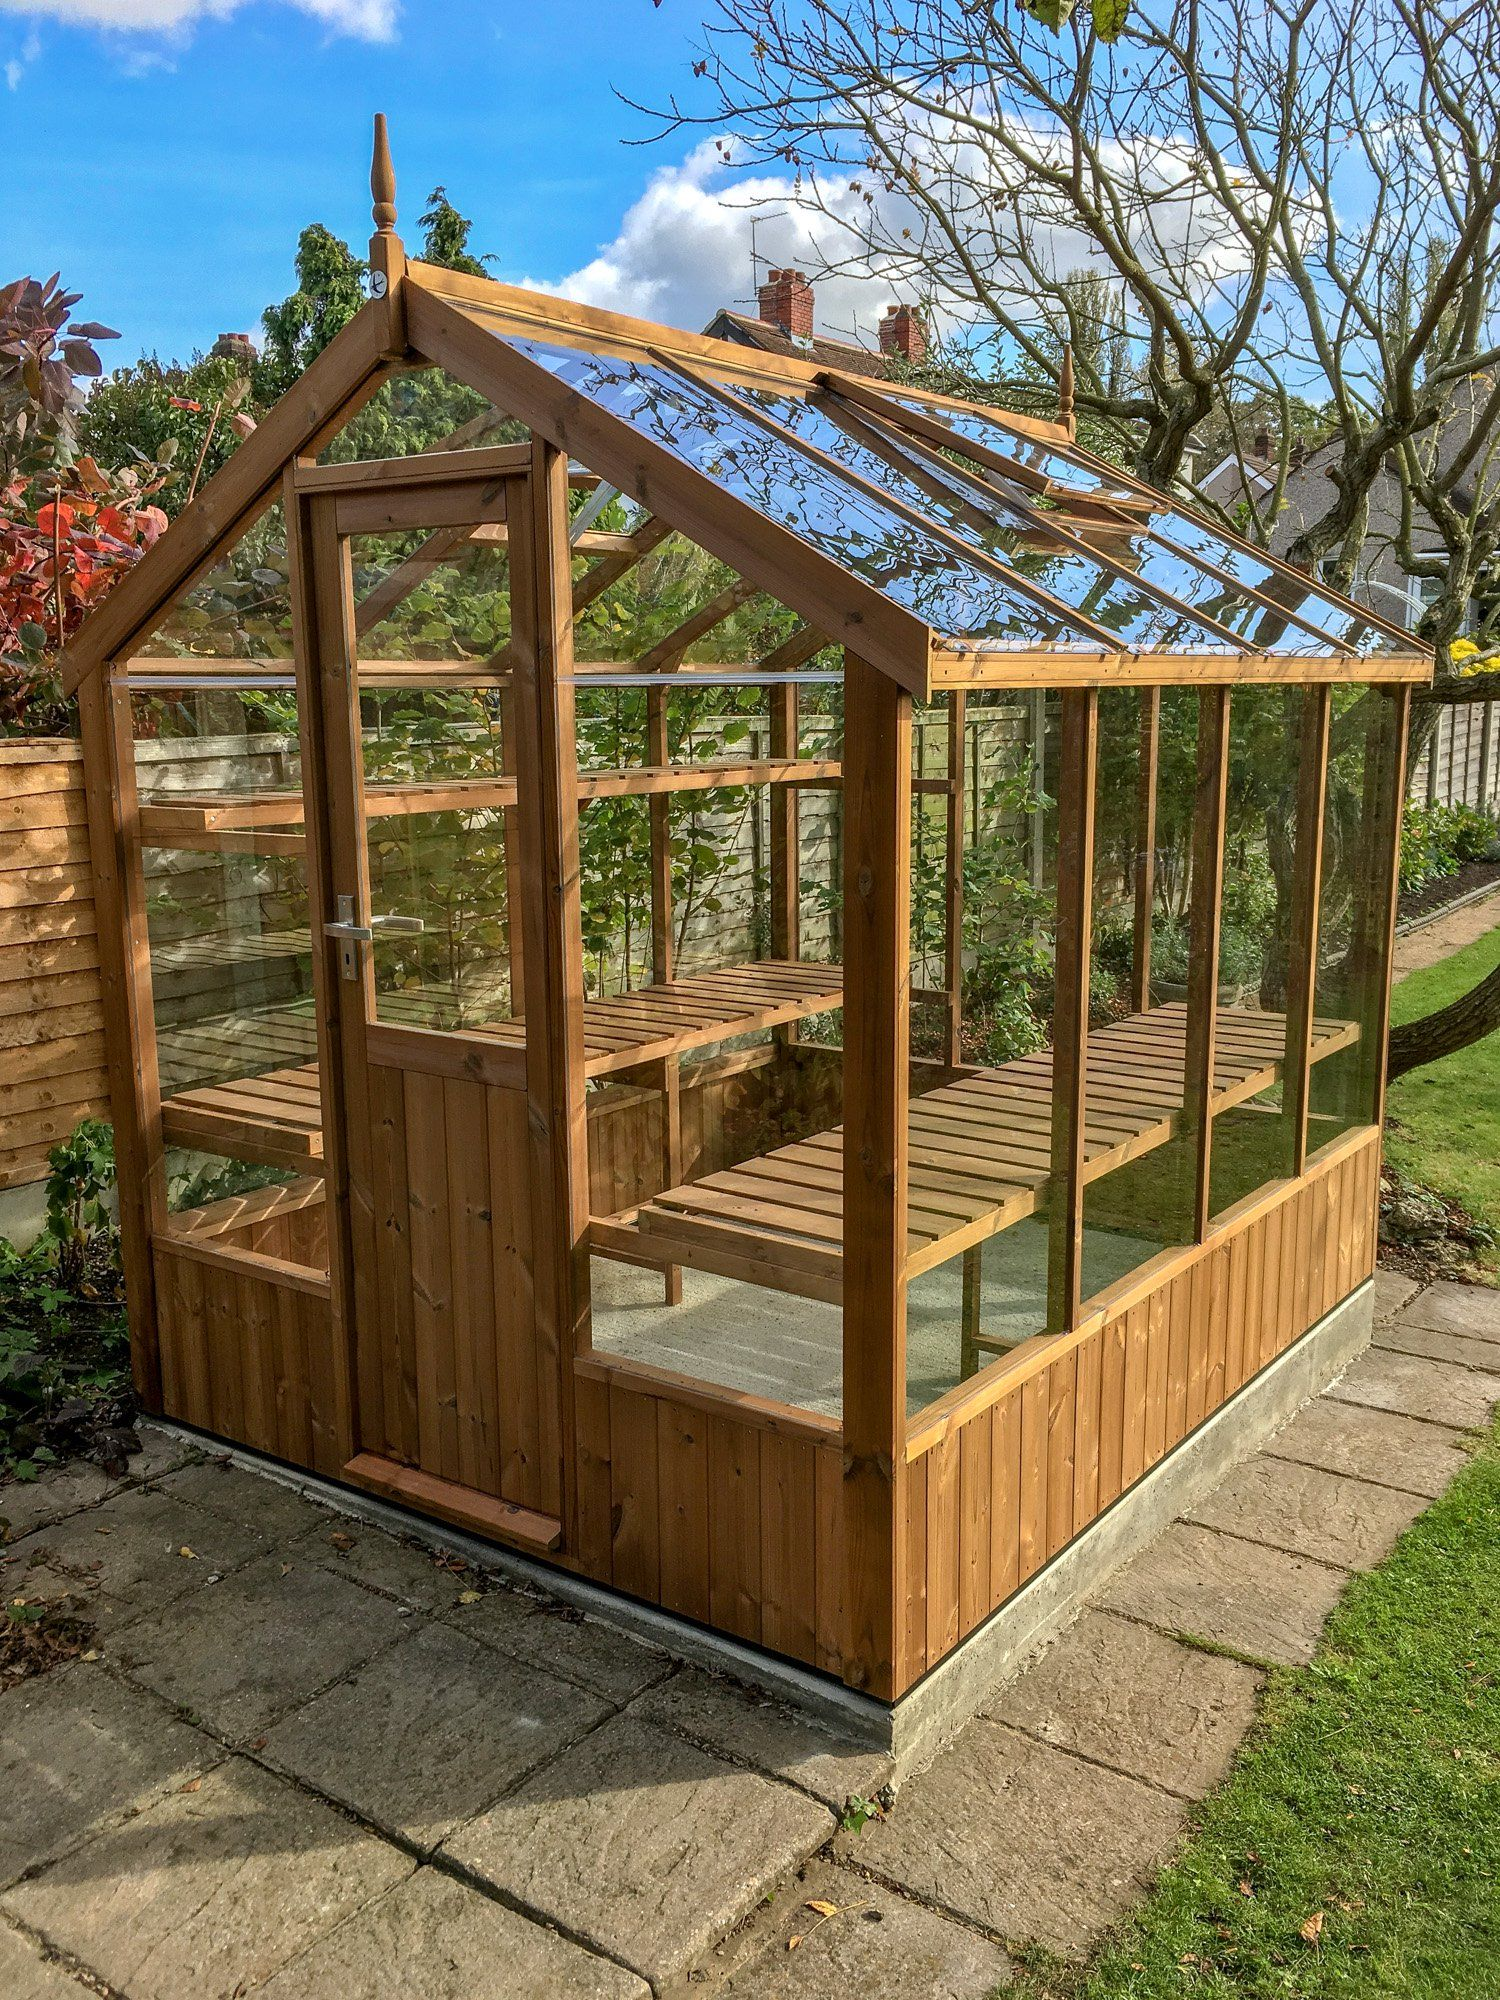 Swallow Kingfisher 6x8 Wooden Greenhouse Outdoor Greenhouse Timber Greenhouse Backyard Greenhouse Small backyard greenhouse ideas